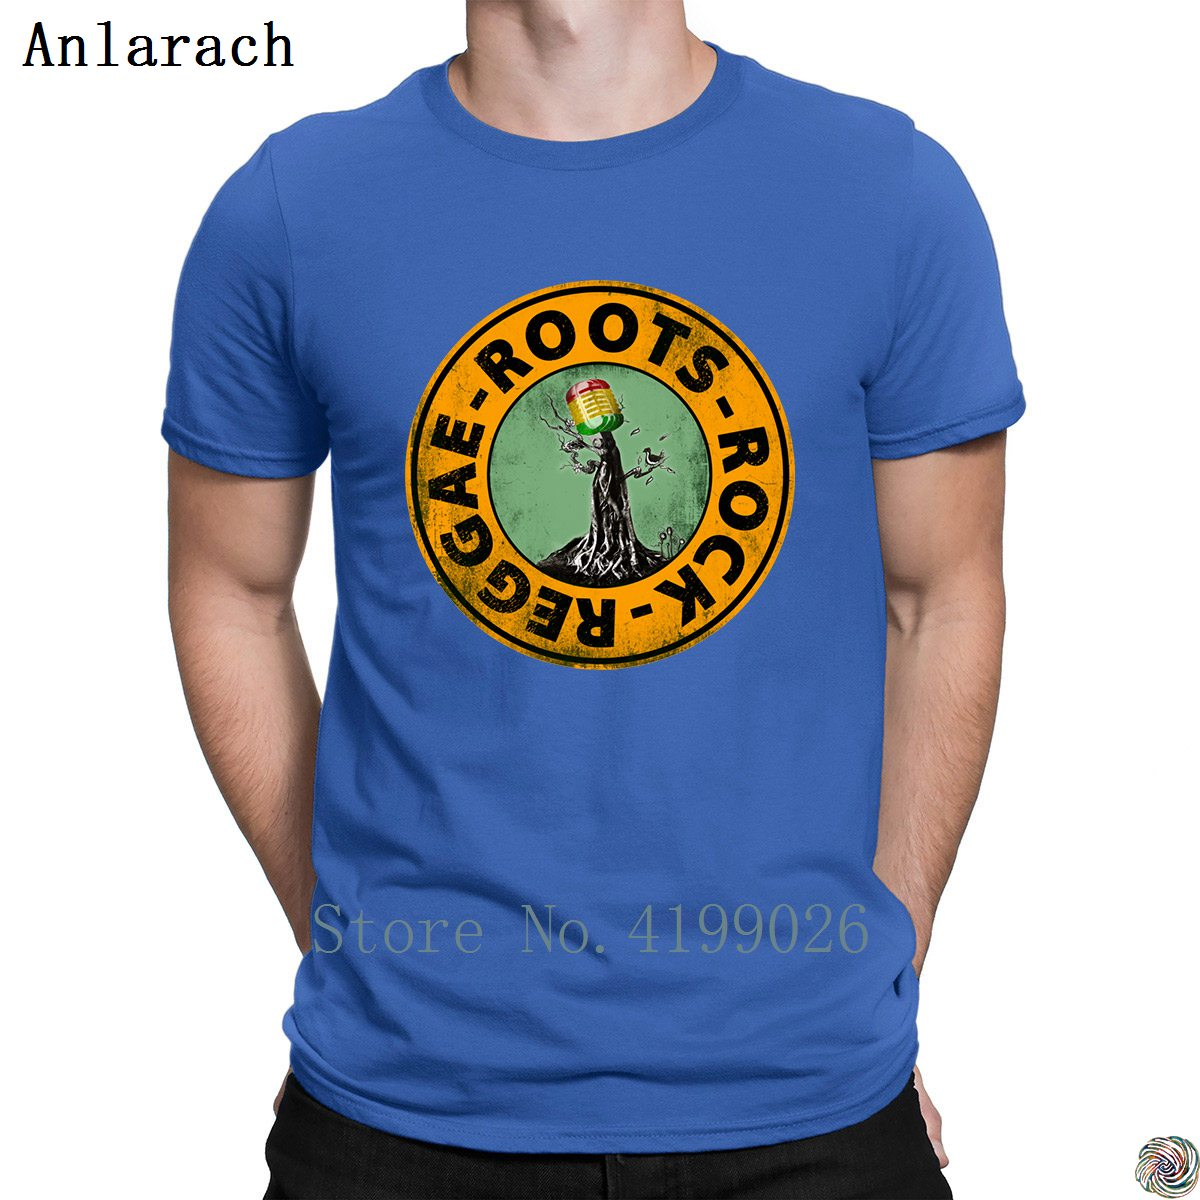 Image 4 - Roots Rock Reggae. t shirts Euro Size Pop Top Tee Basic Solid men's tshirt Designing High quality summer Anlarach New Style-in T-Shirts from Men's Clothing